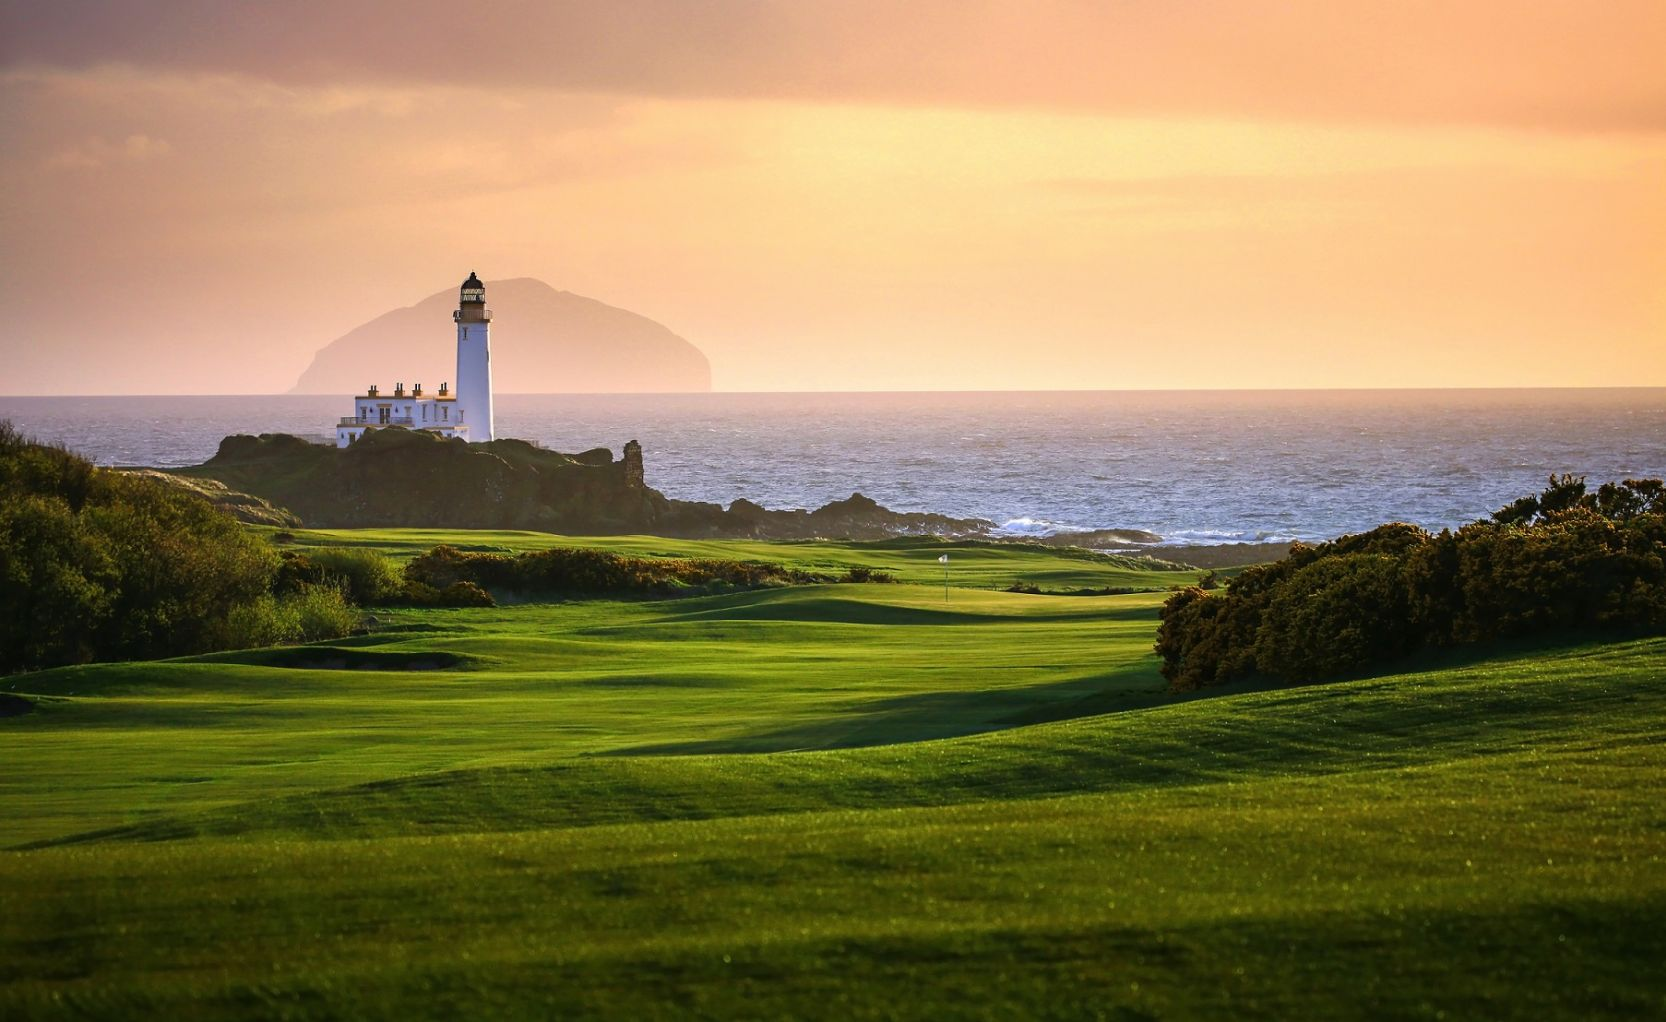 Trump Turnberry Golf Course and Lighthouse overlooking ocean